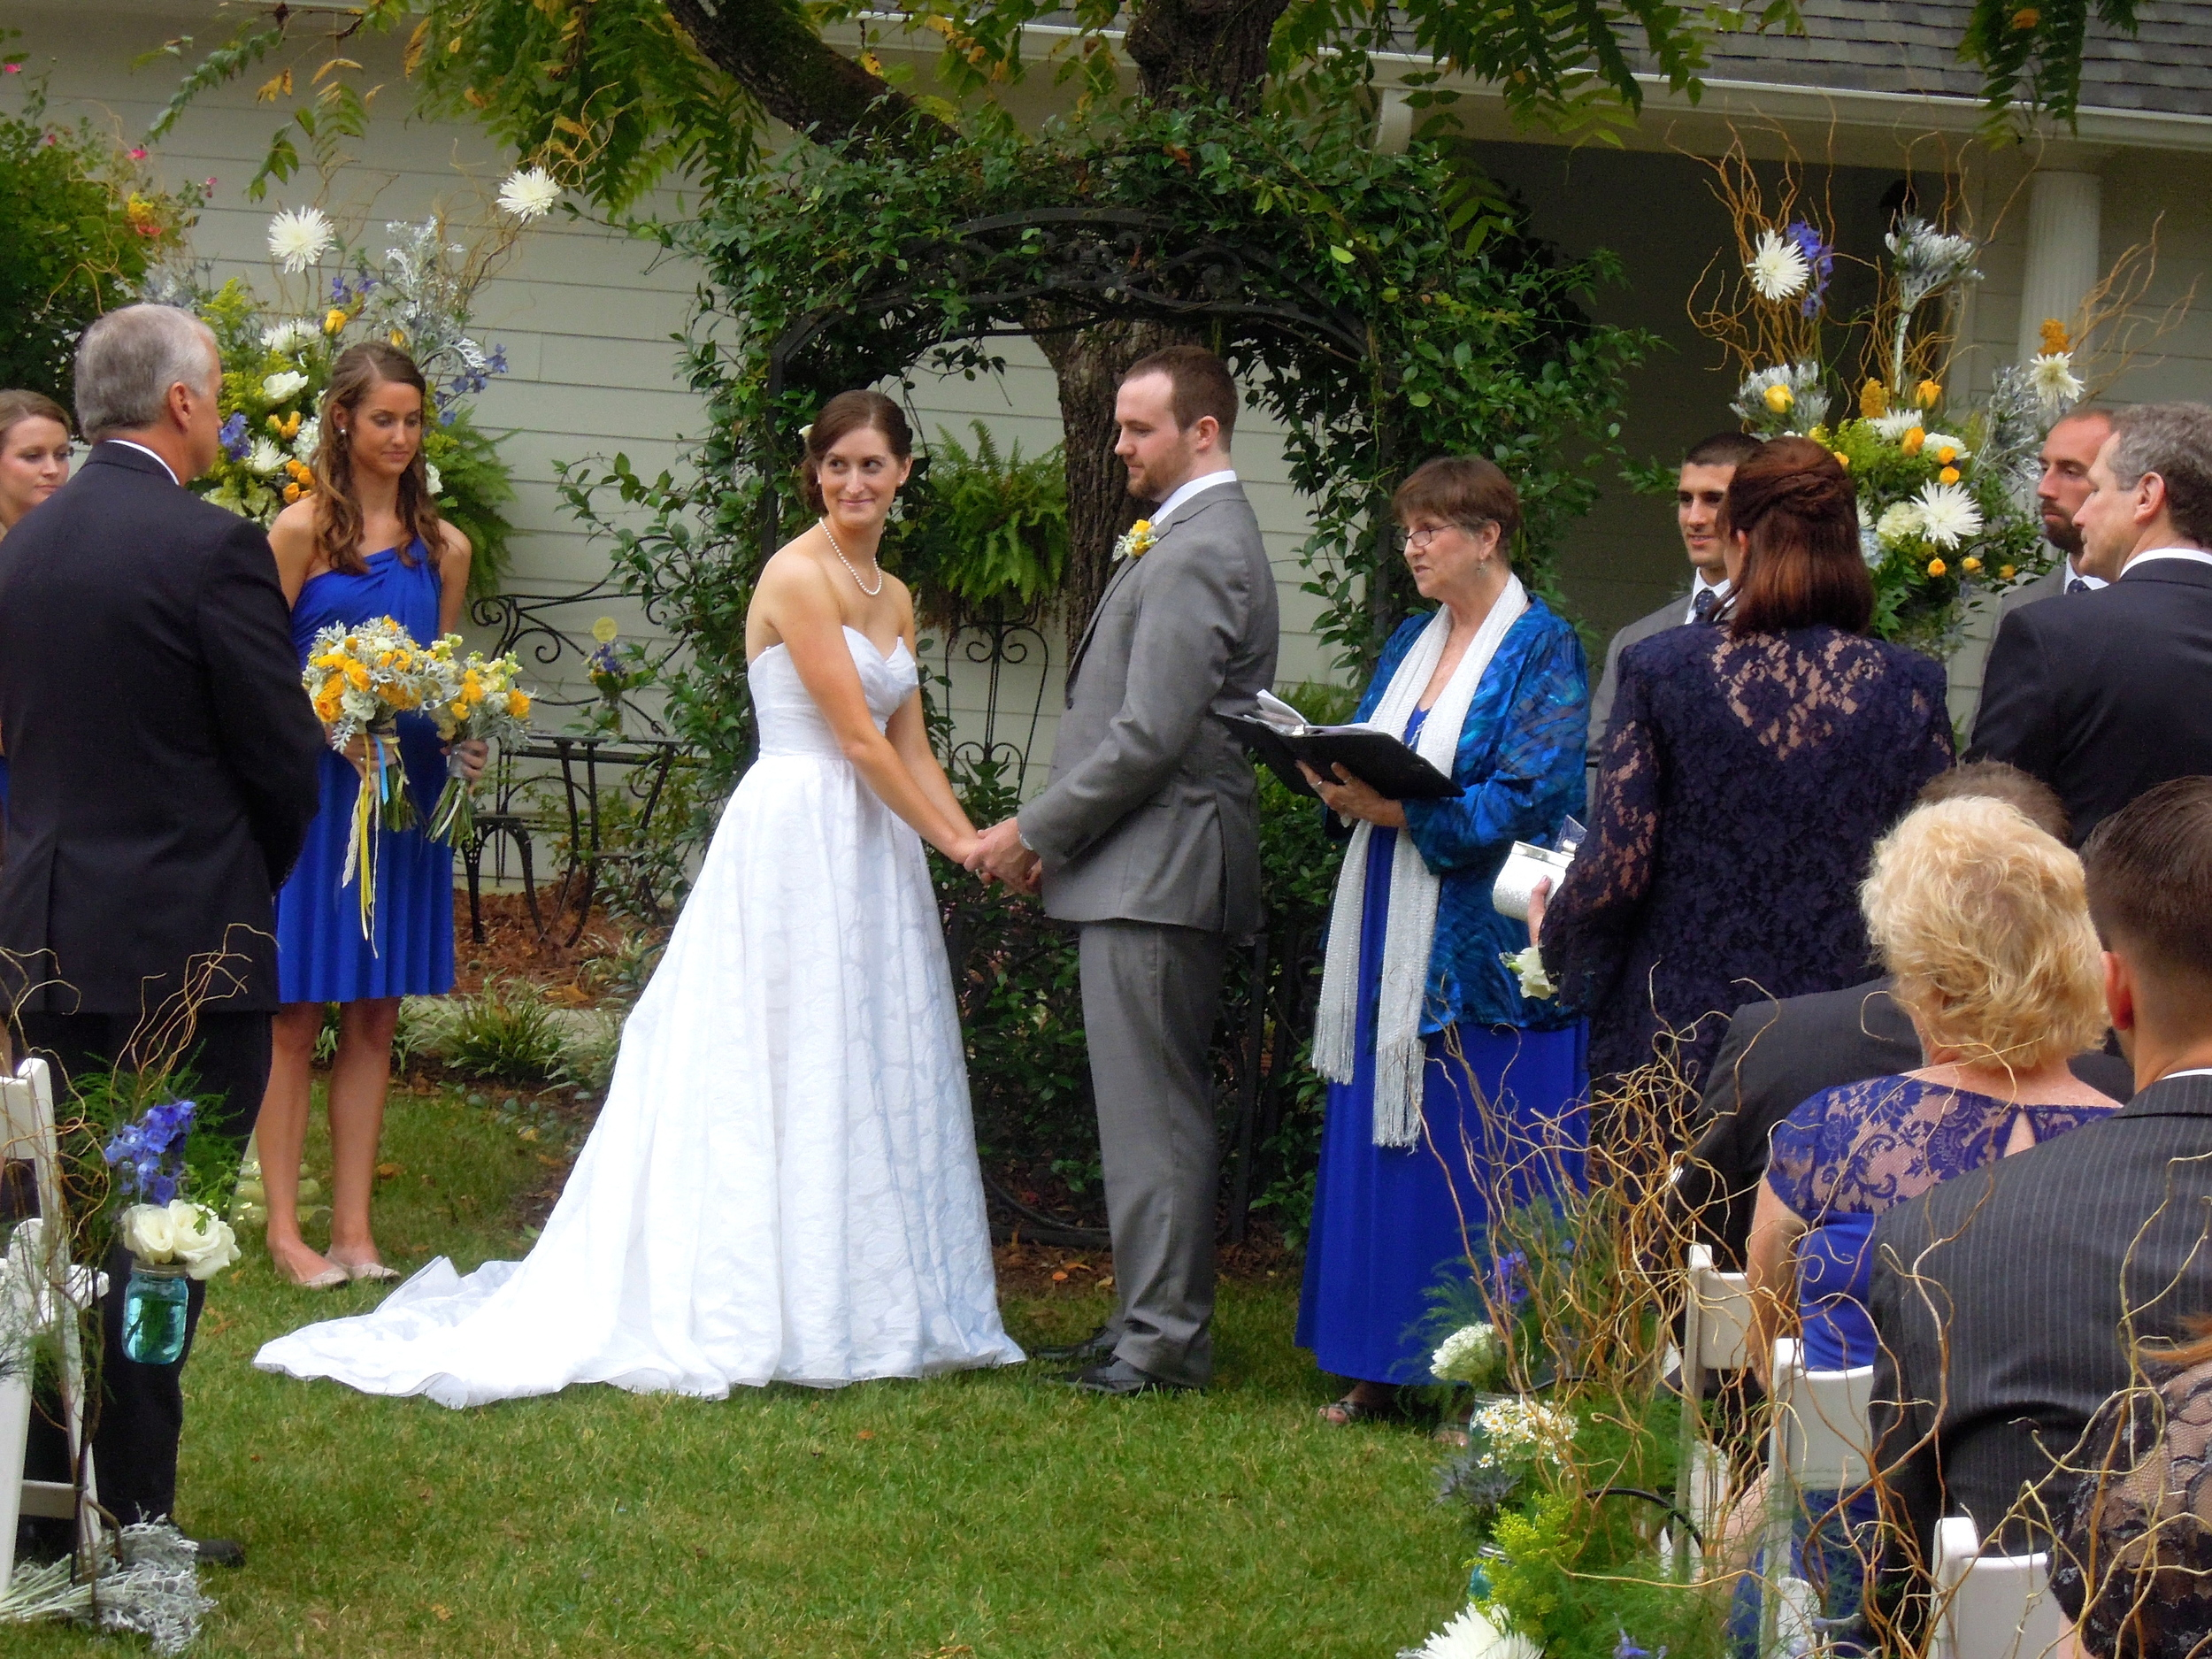 Wedding Ceremony at The Matthews House in Cary NC